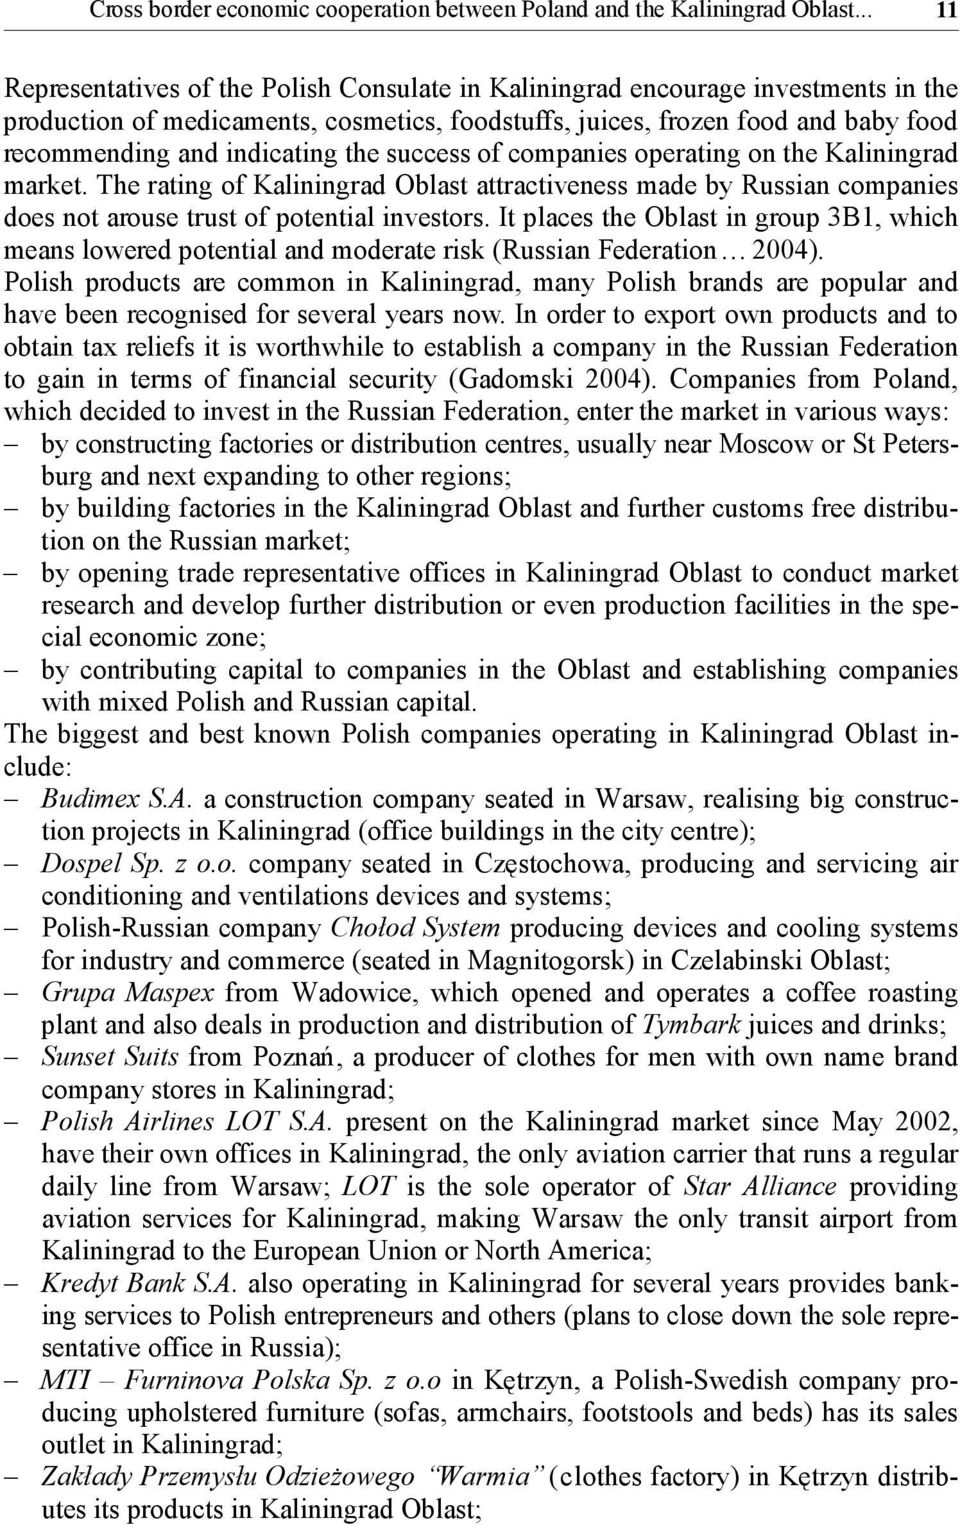 indicating the success of companies operating on the Kaliningrad market. The rating of Kaliningrad Oblast attractiveness made by Russian companies does not arouse trust of potential investors.